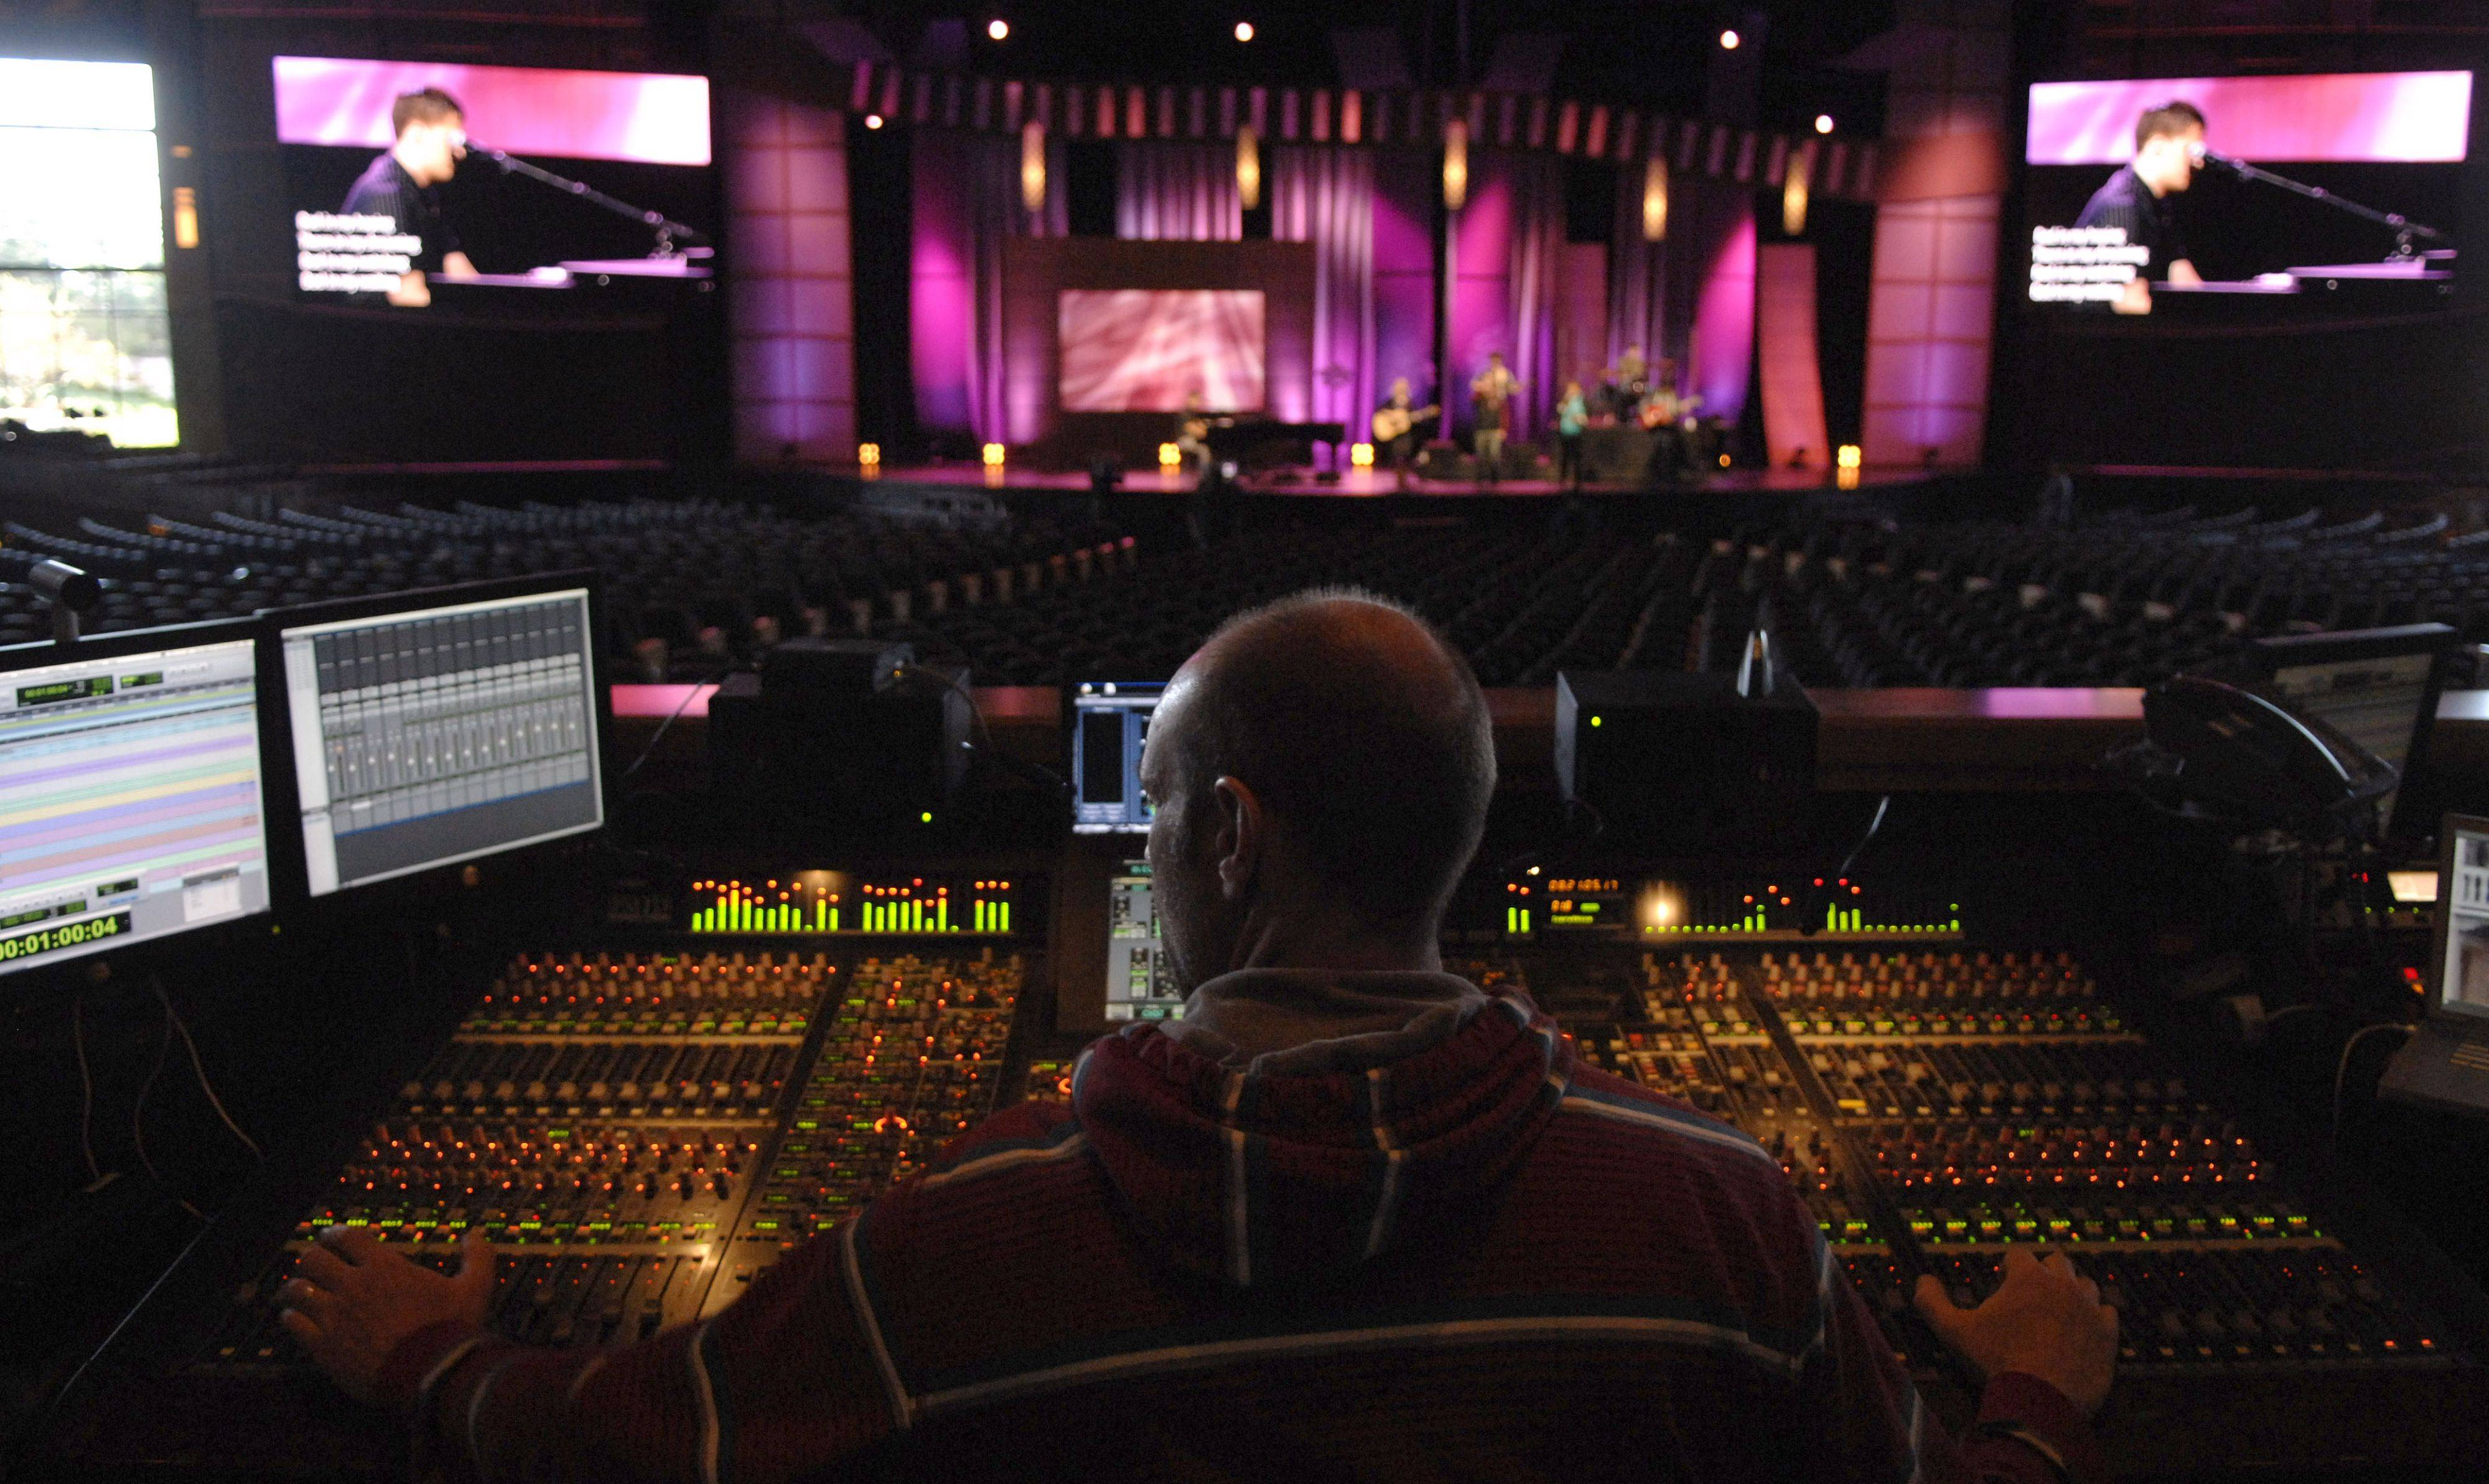 Staff audio engineer Ron Cook controls the mixing board during a full rehearsal at Willow Creek before the first service of the day.